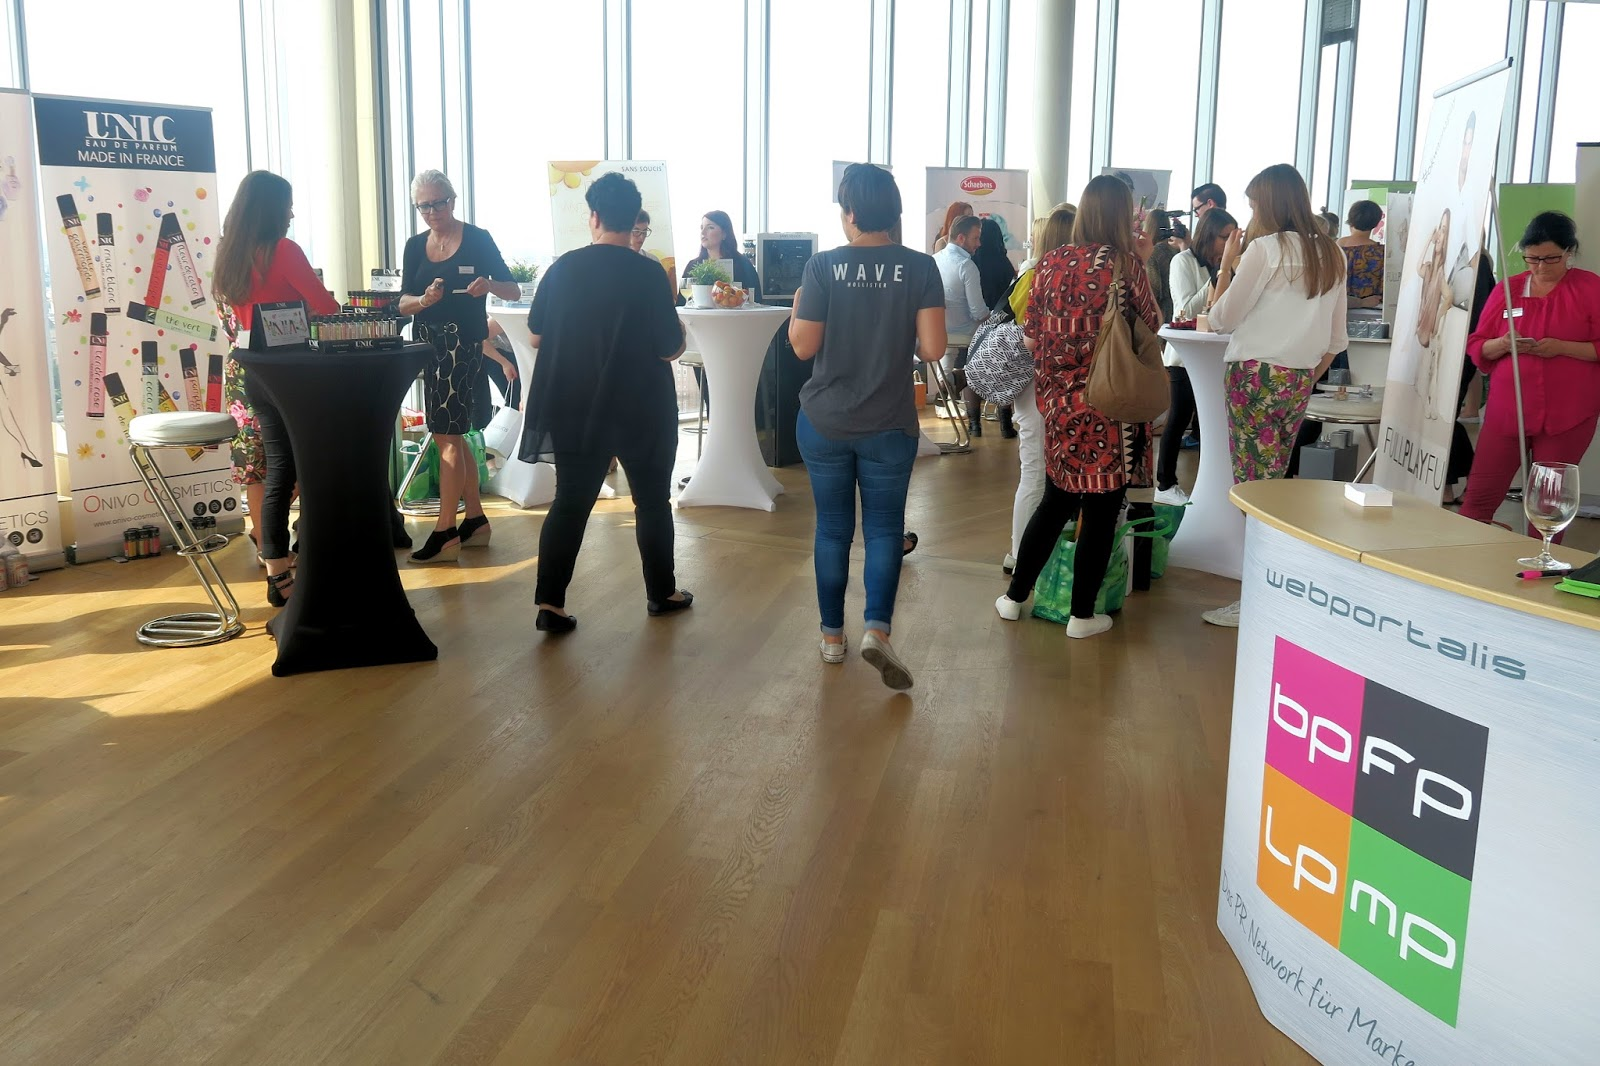 beautypress, bloggerevent, köln, 2016, juli, blogger event, beauty, pr network, eventbericht, kölnSKY, eventlocation, webportalis, barbara meier, schaebens, sothys, mary kay, hollister, avéne, rene furterer, alverde,